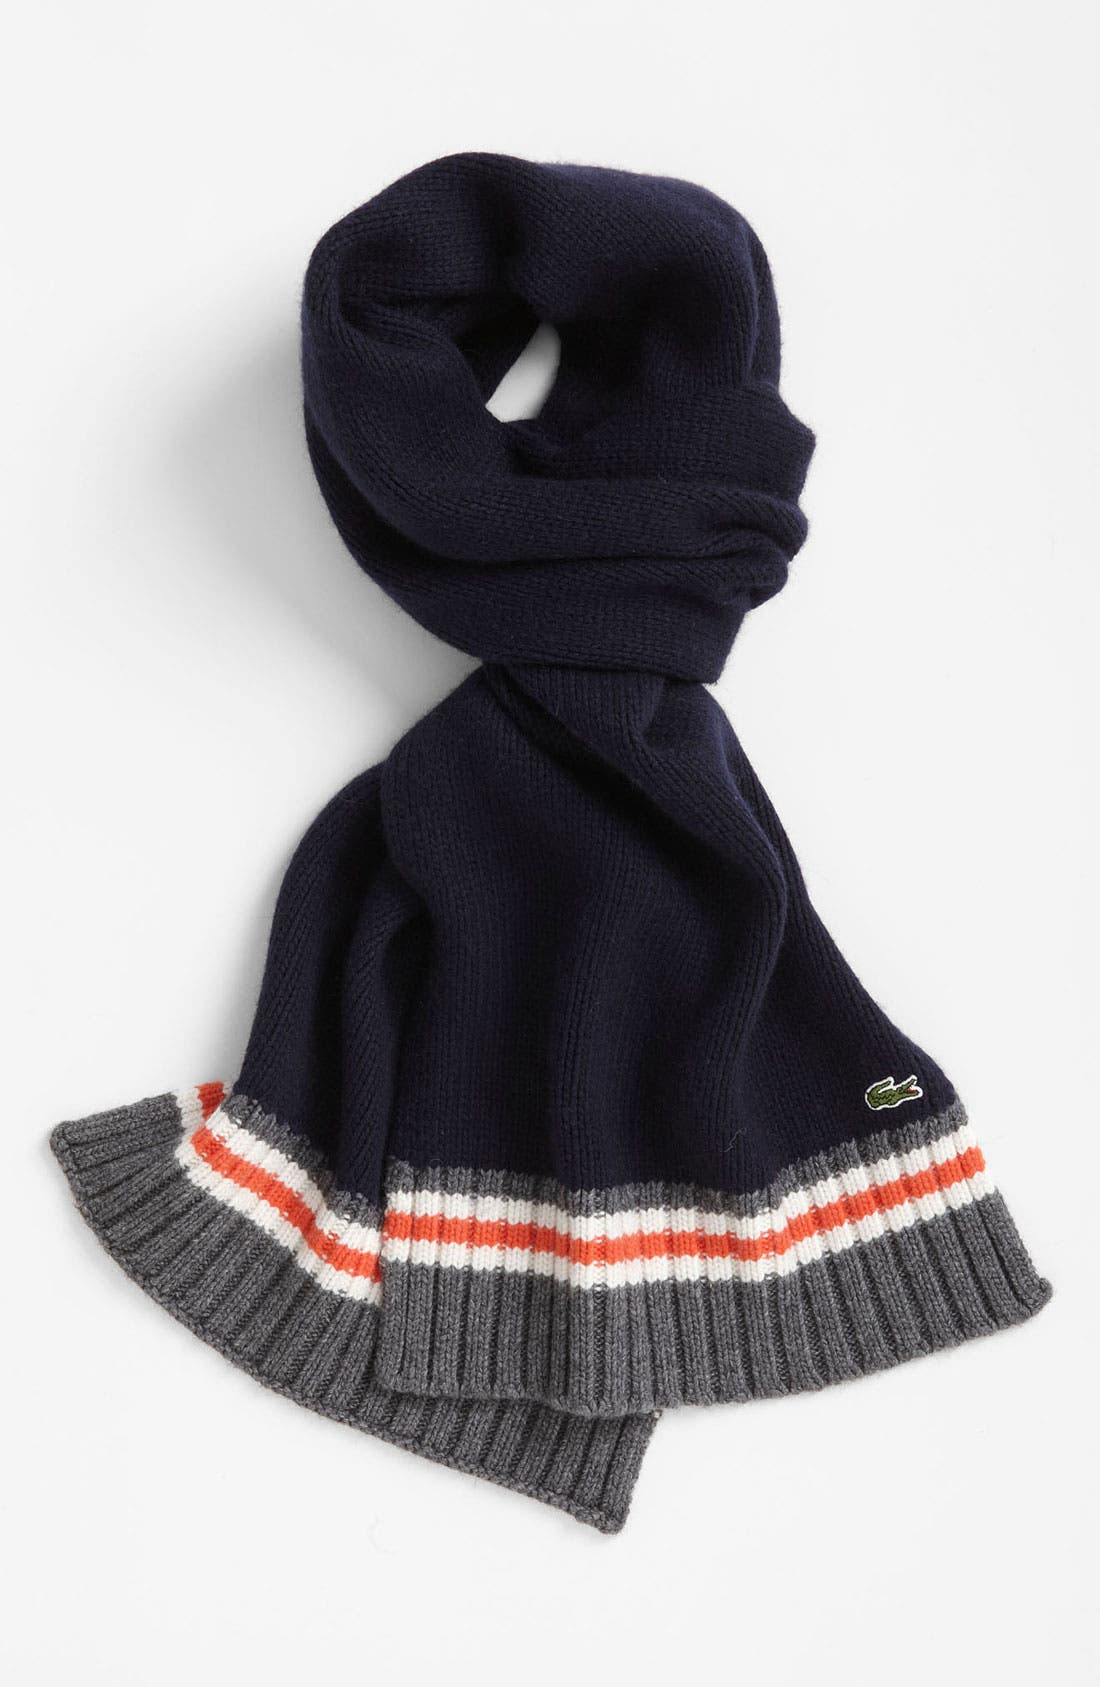 Alternate Image 1 Selected - Lacoste 'Toboggan' Knit Scarf